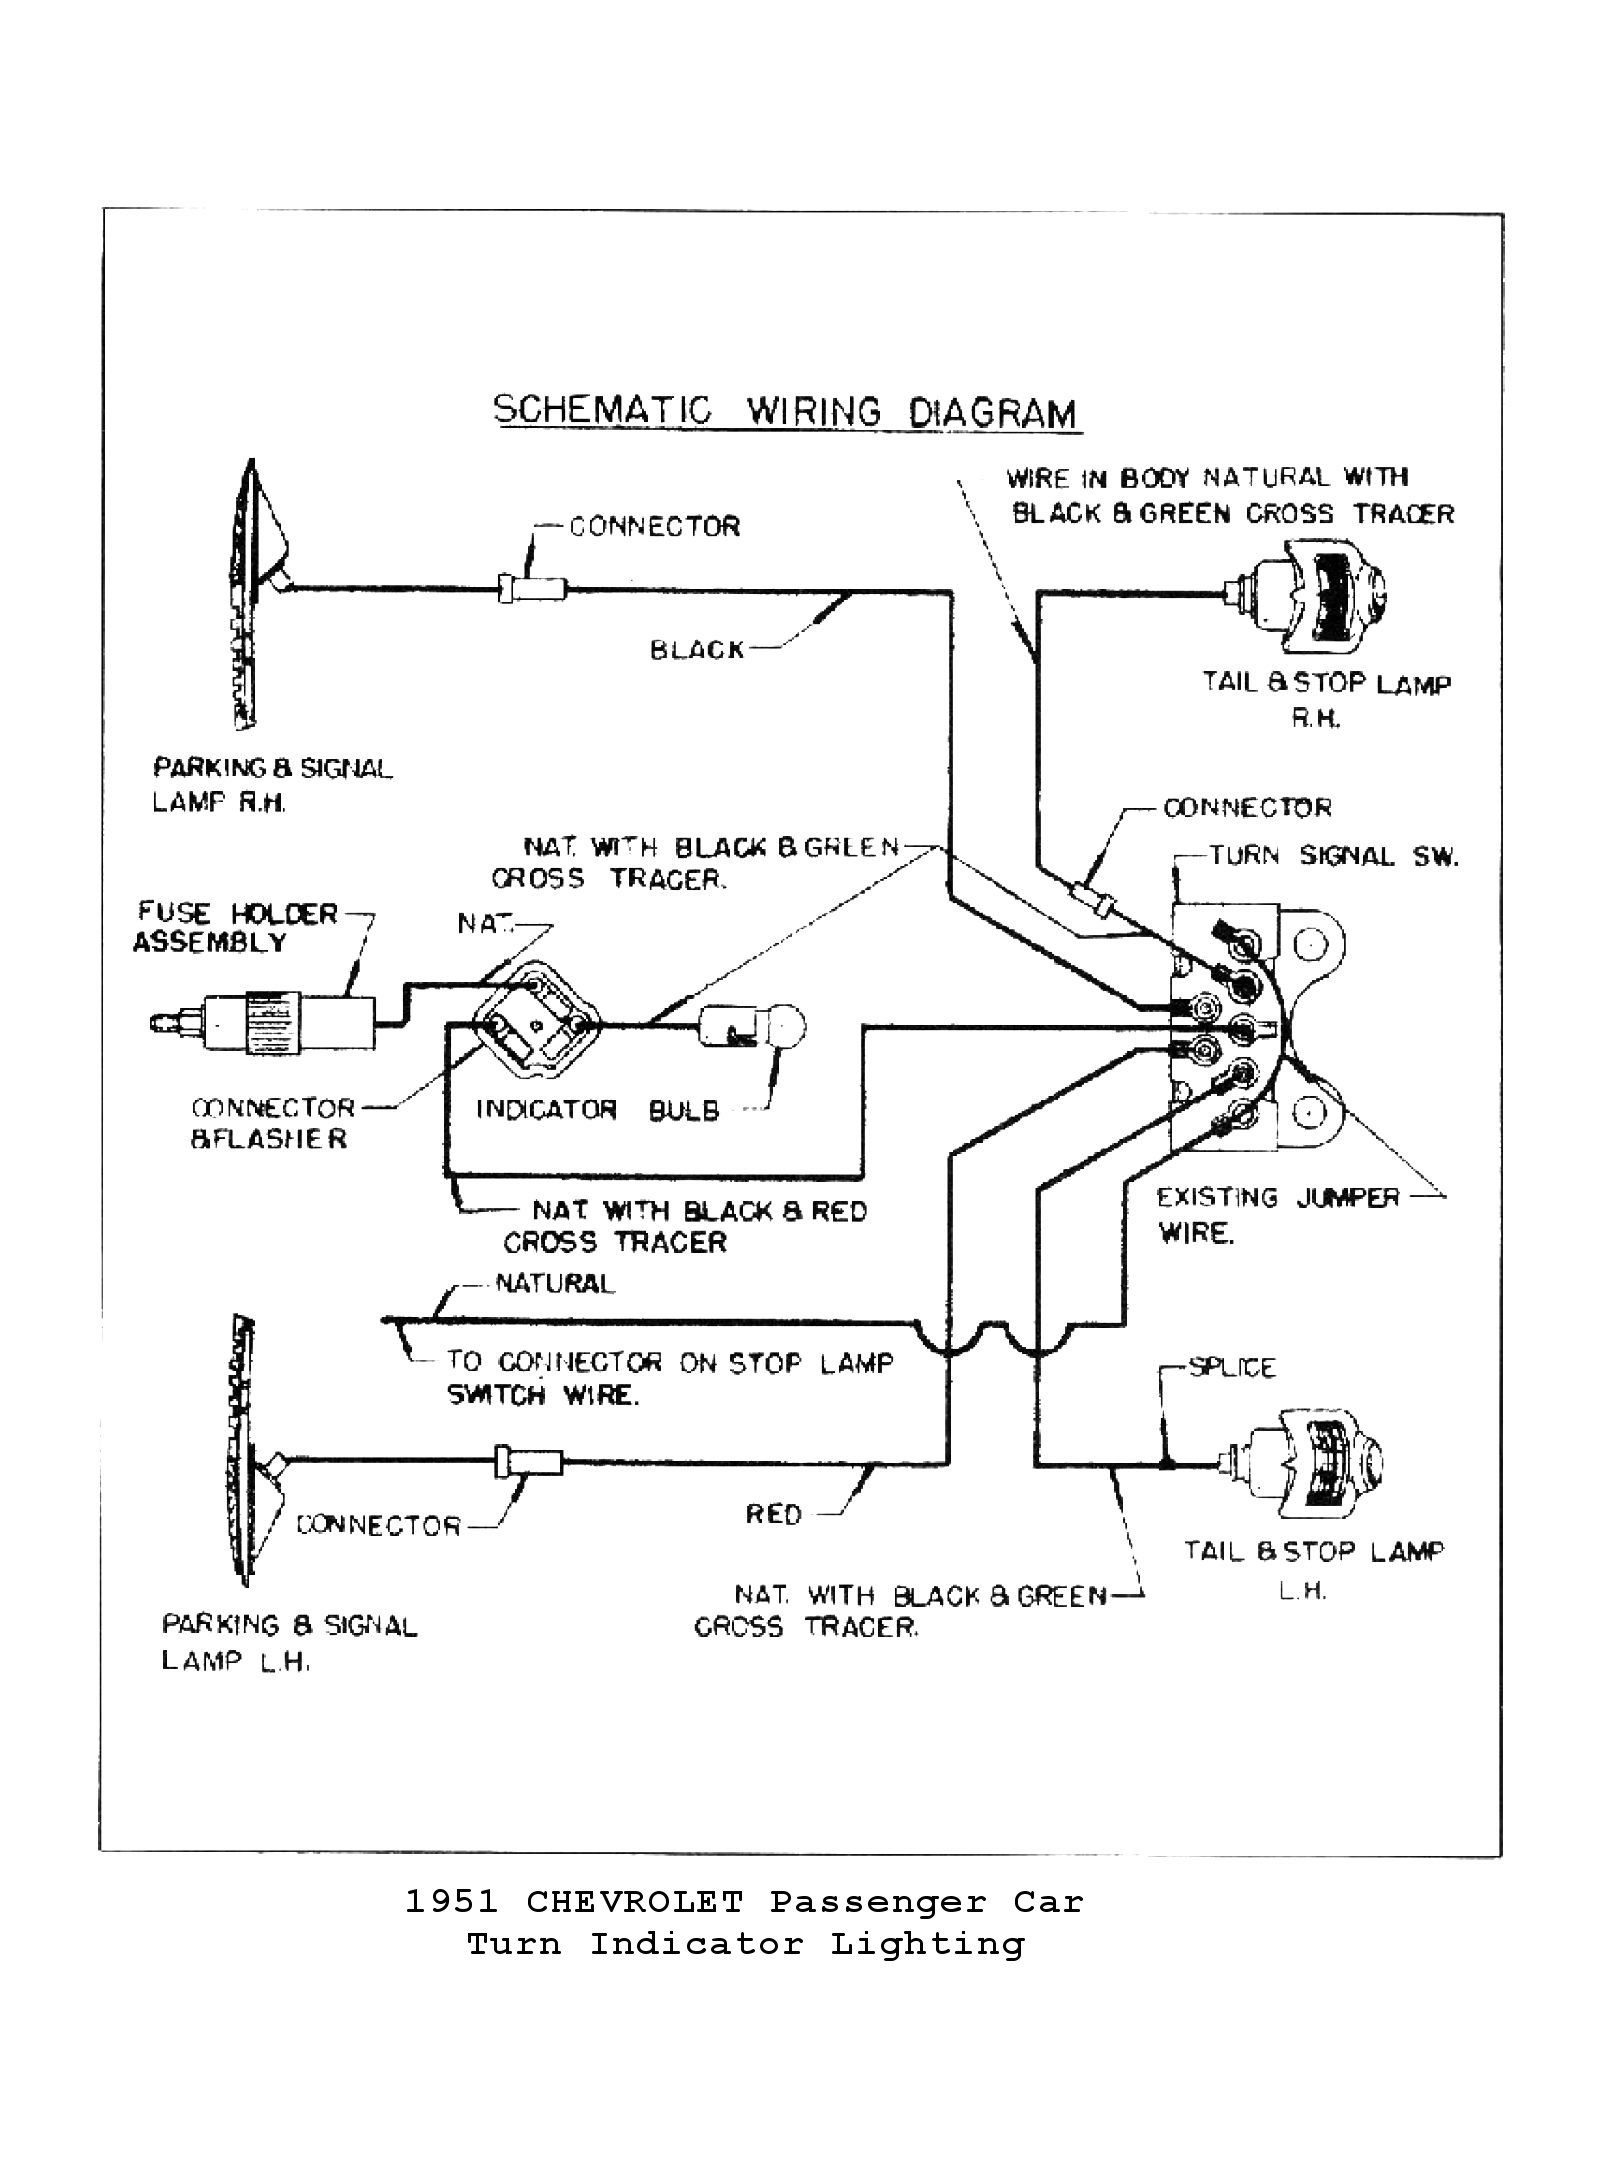 1948 Chevrolet Wiring Diagram Another Blog About 1928 Chevy Wire Diagrams Rh Oldcarmanualproject Com Fleetline